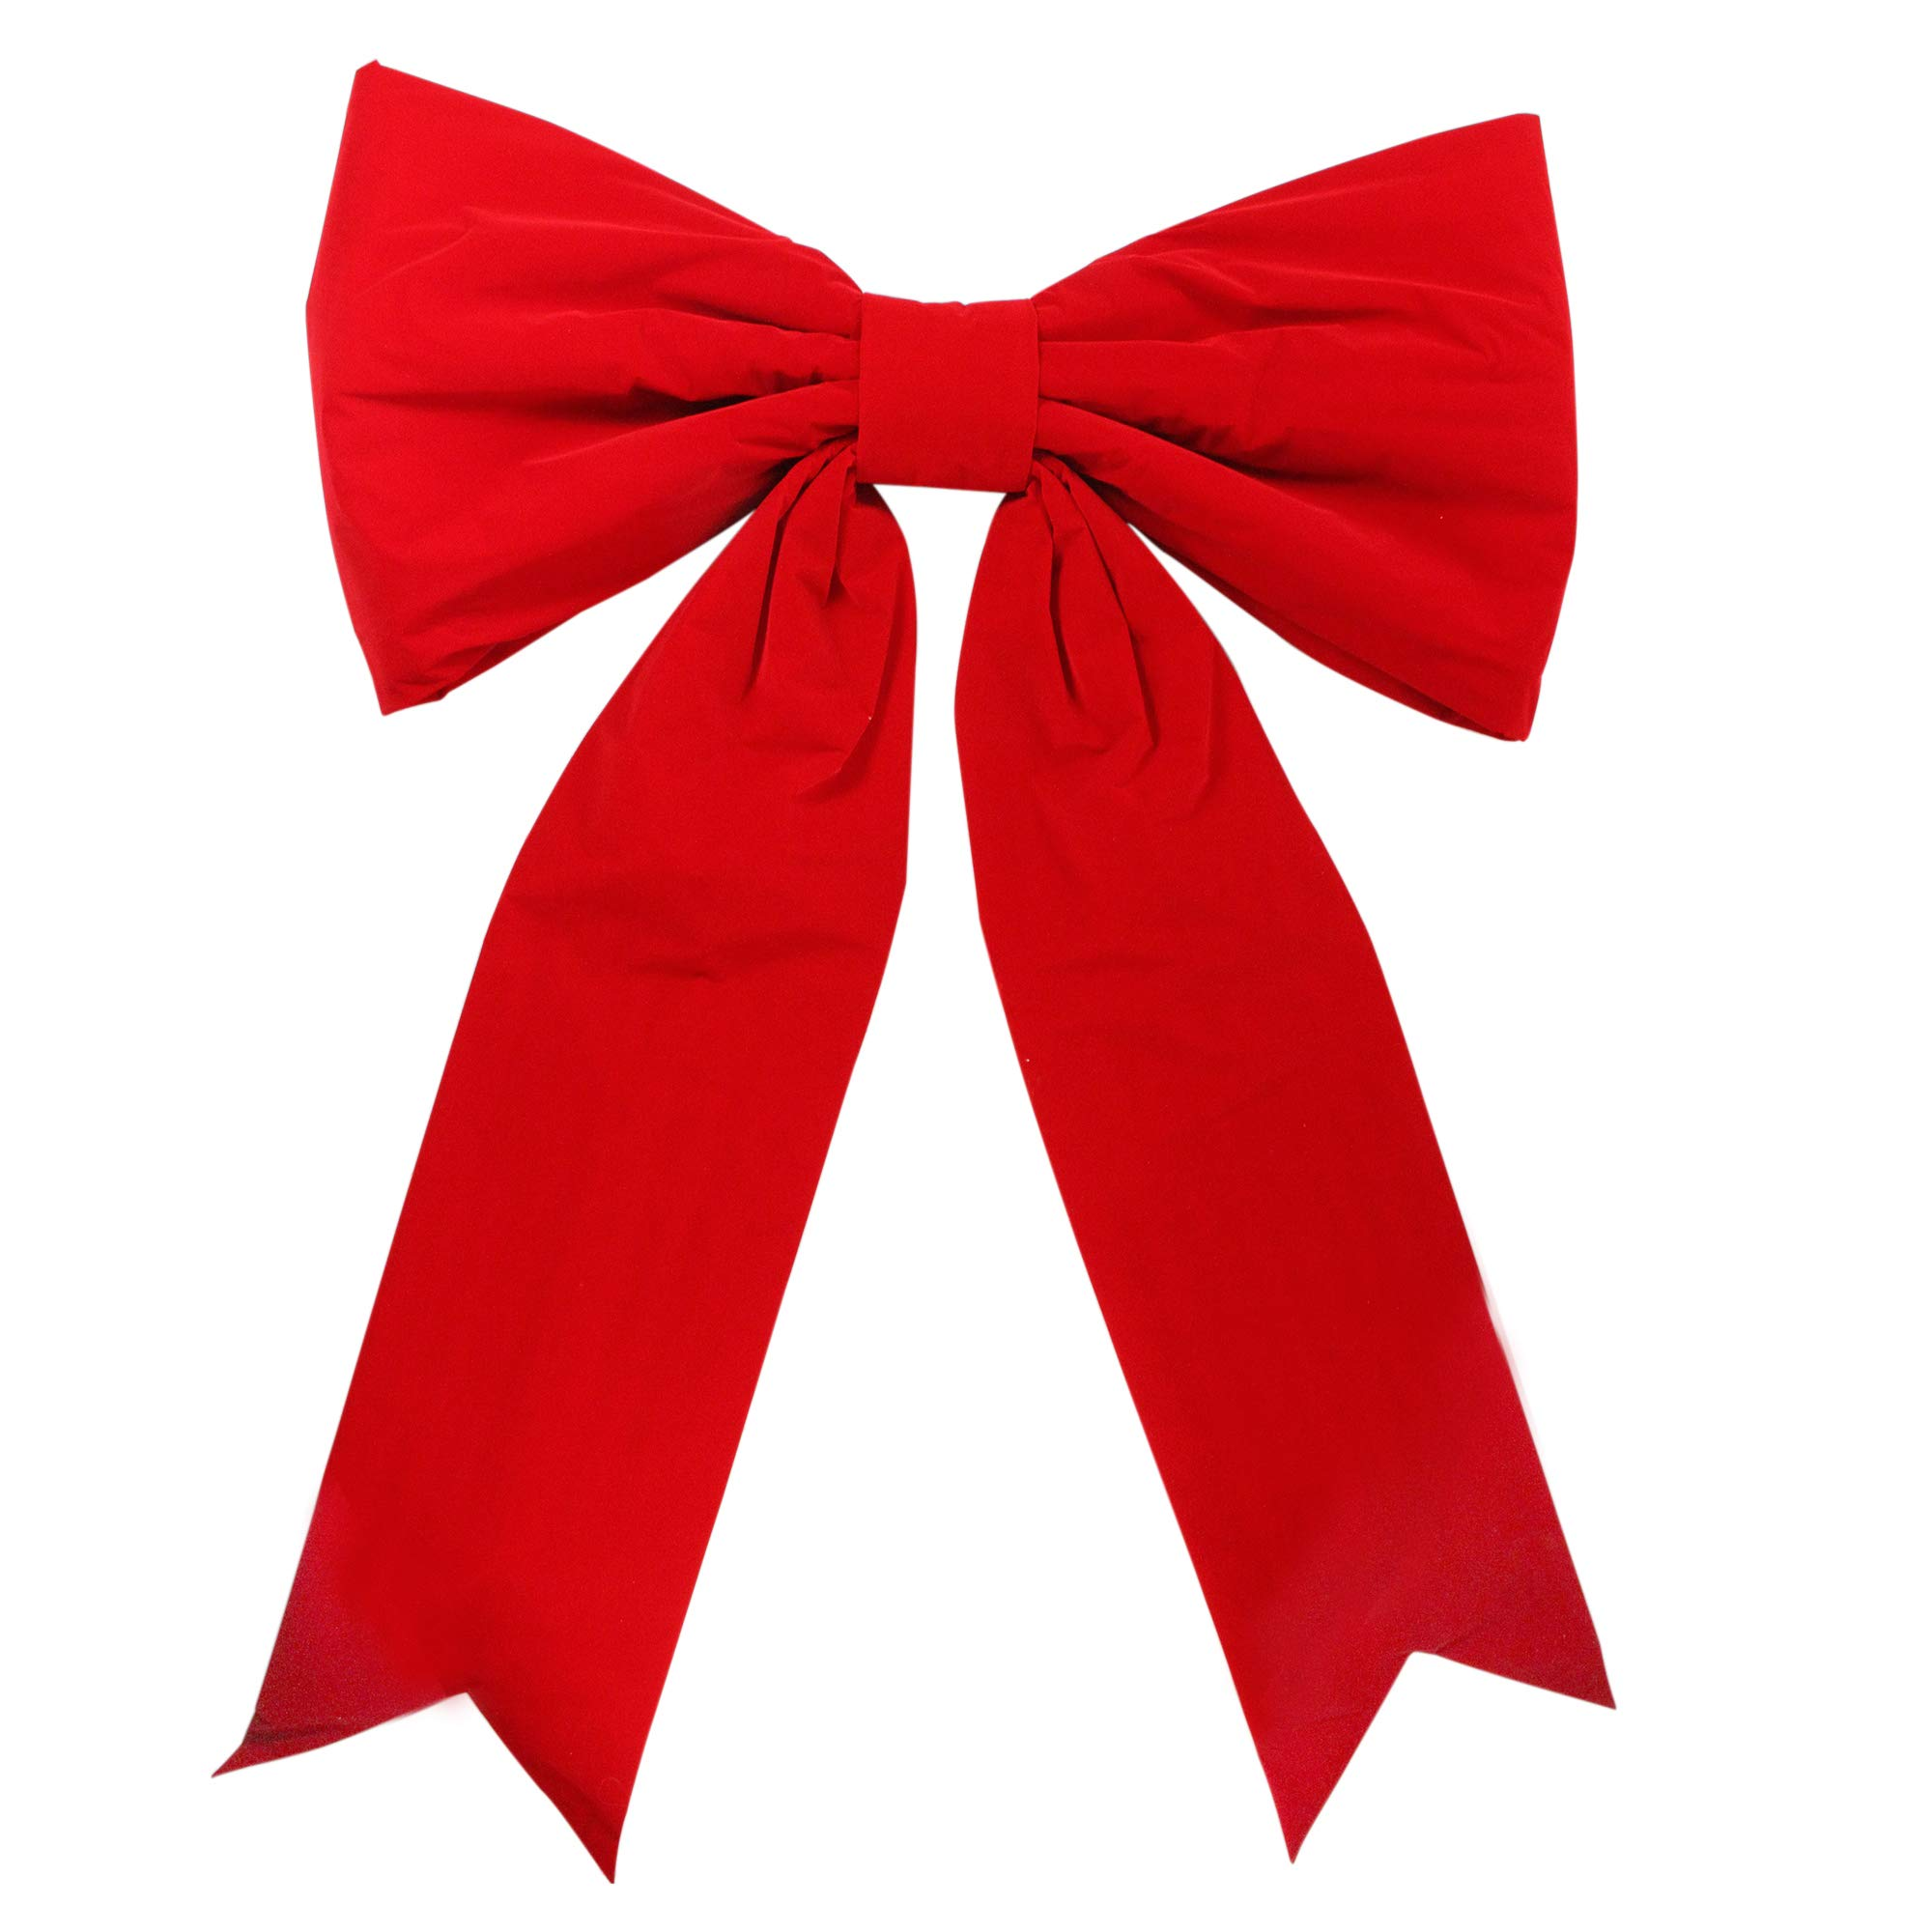 Northlight 43'' x 64'' Giant Commercial 2-Loop Red Velveteen Christmas Bow Decoration